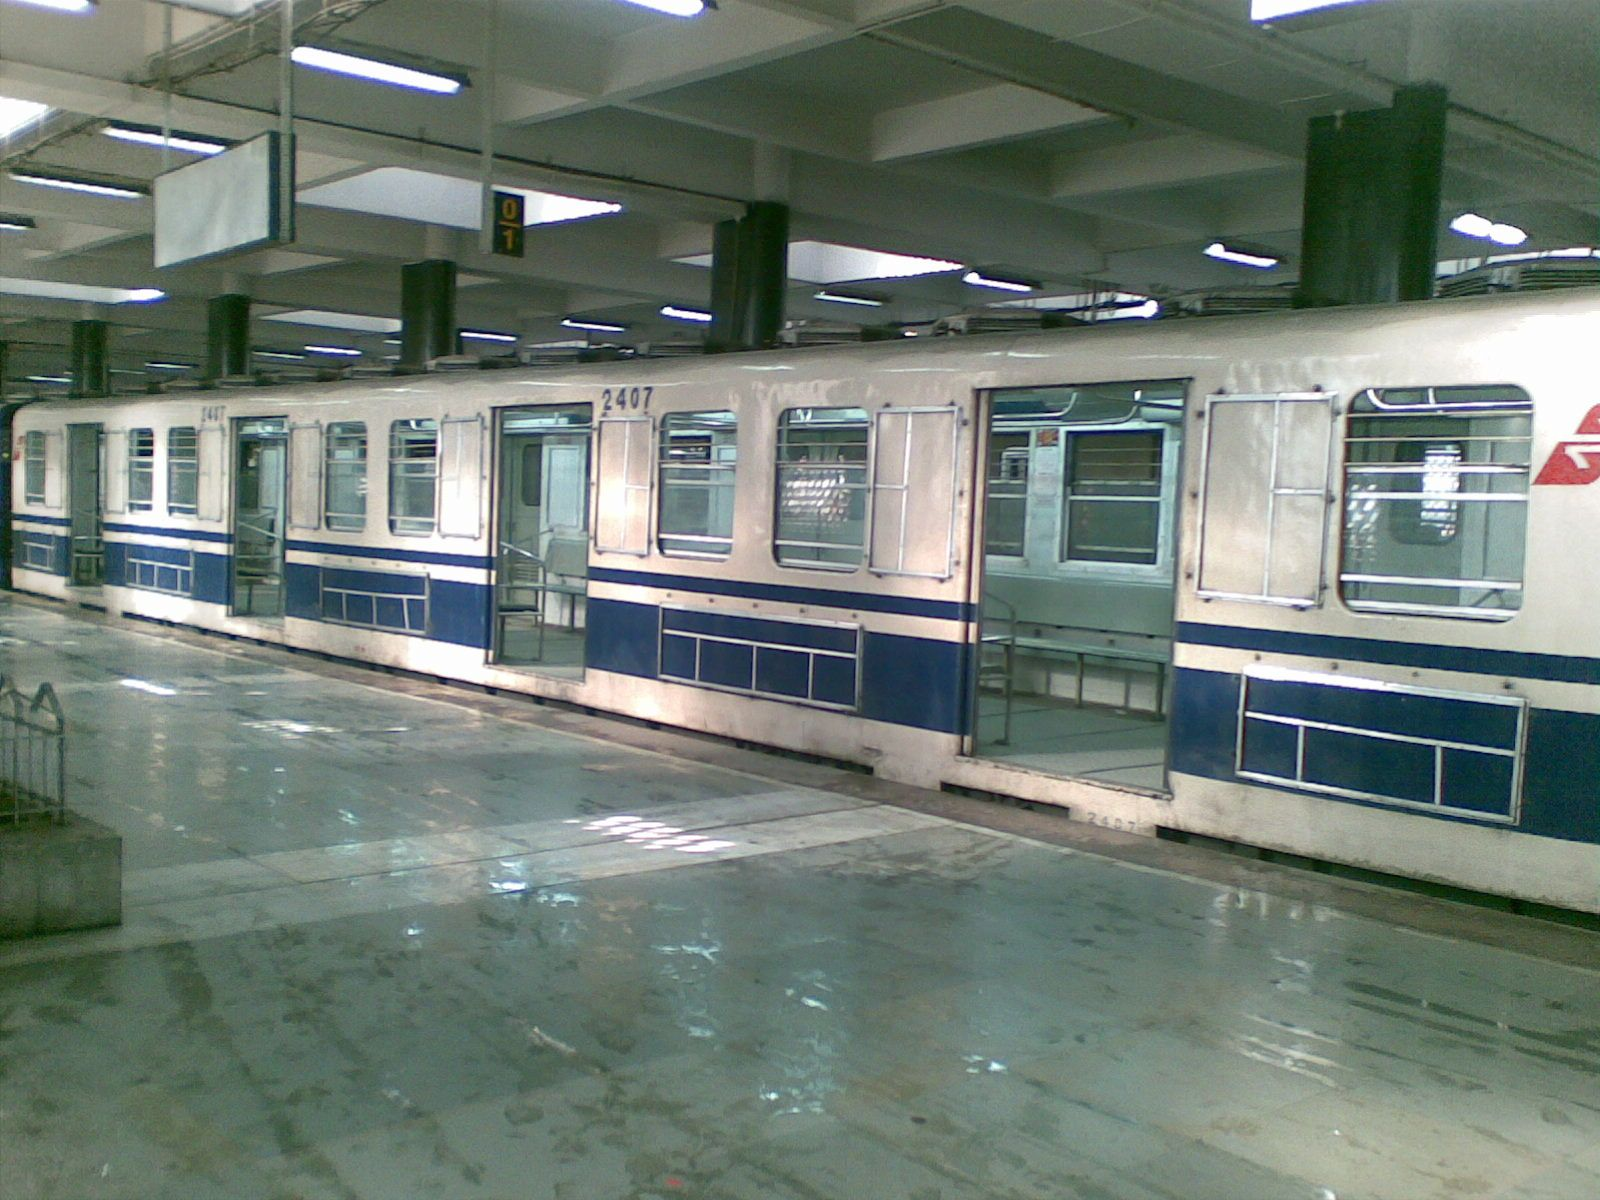 kolkata-metro-train-at-station